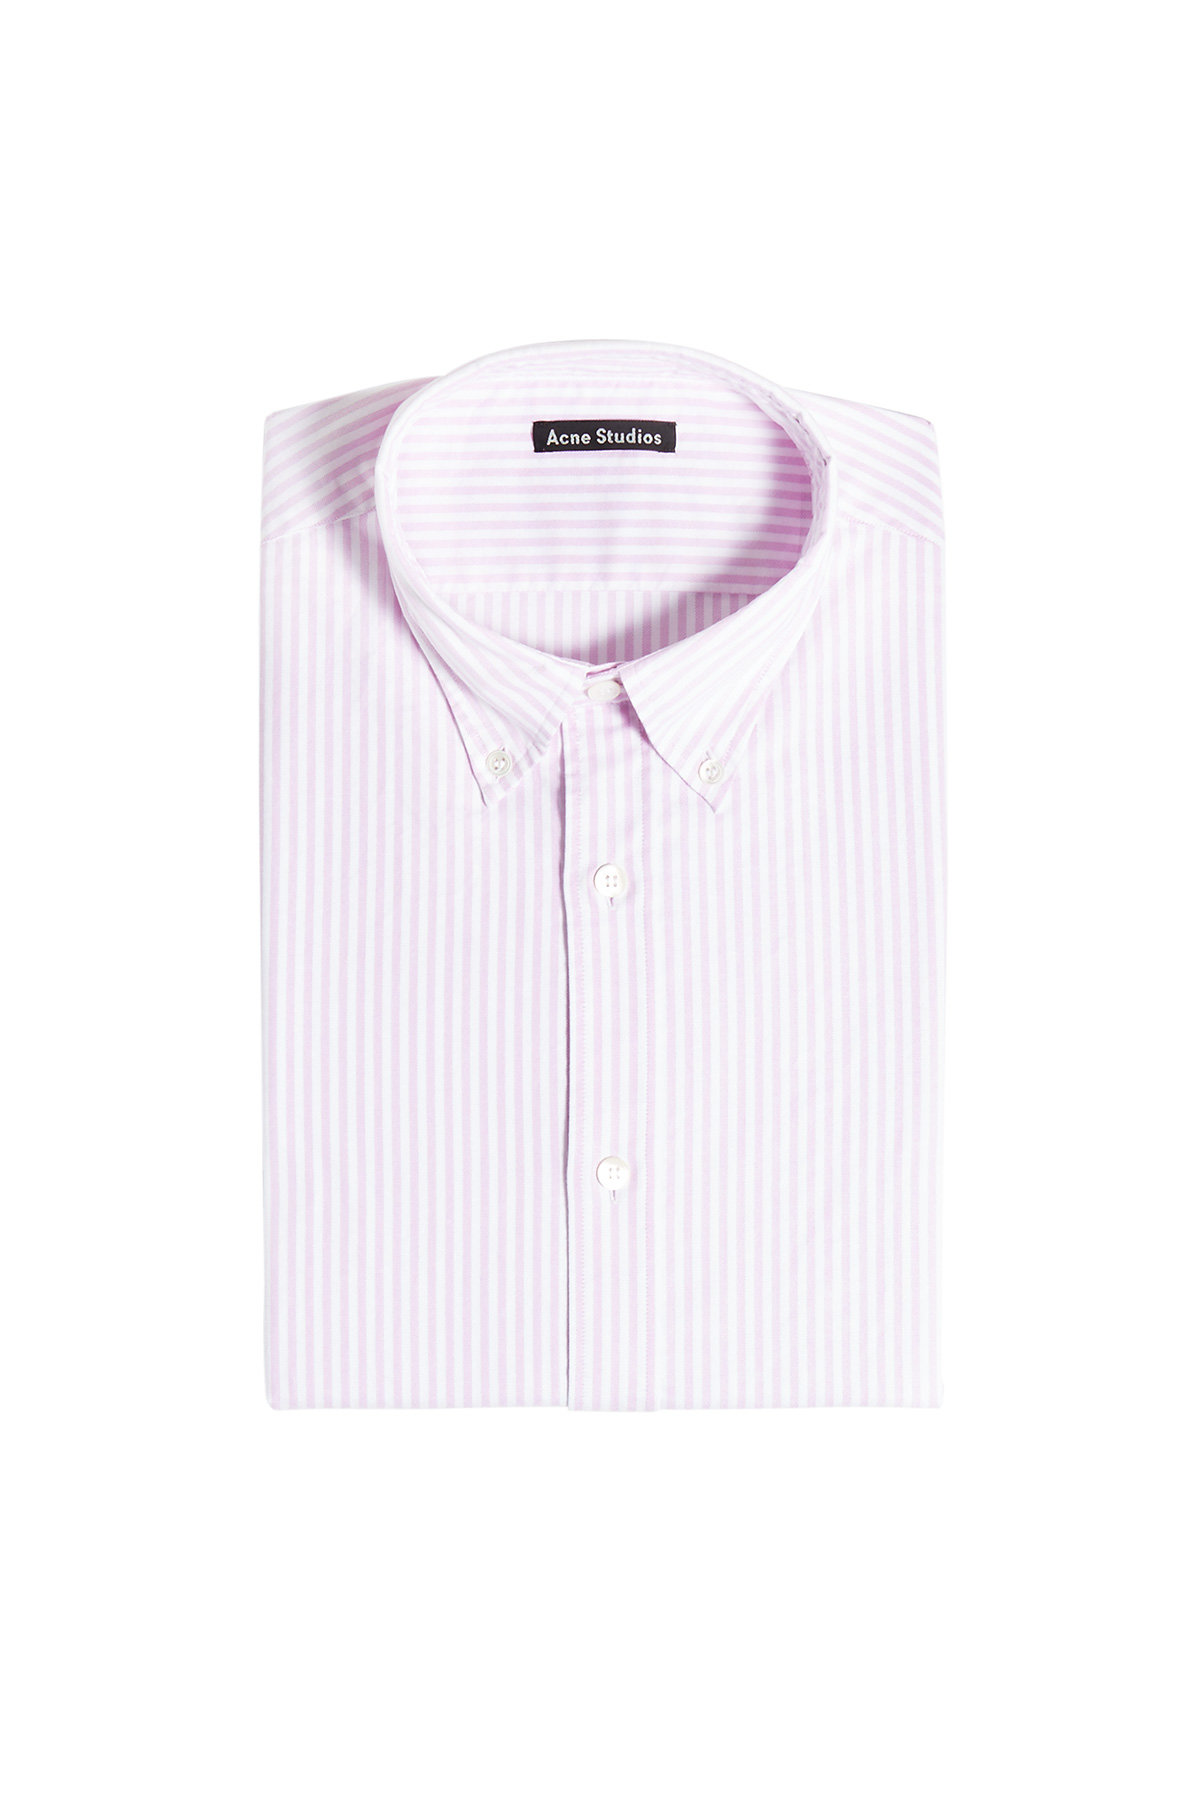 Ohio Face Striped Cotton Shirt | ACNE STUDIOS